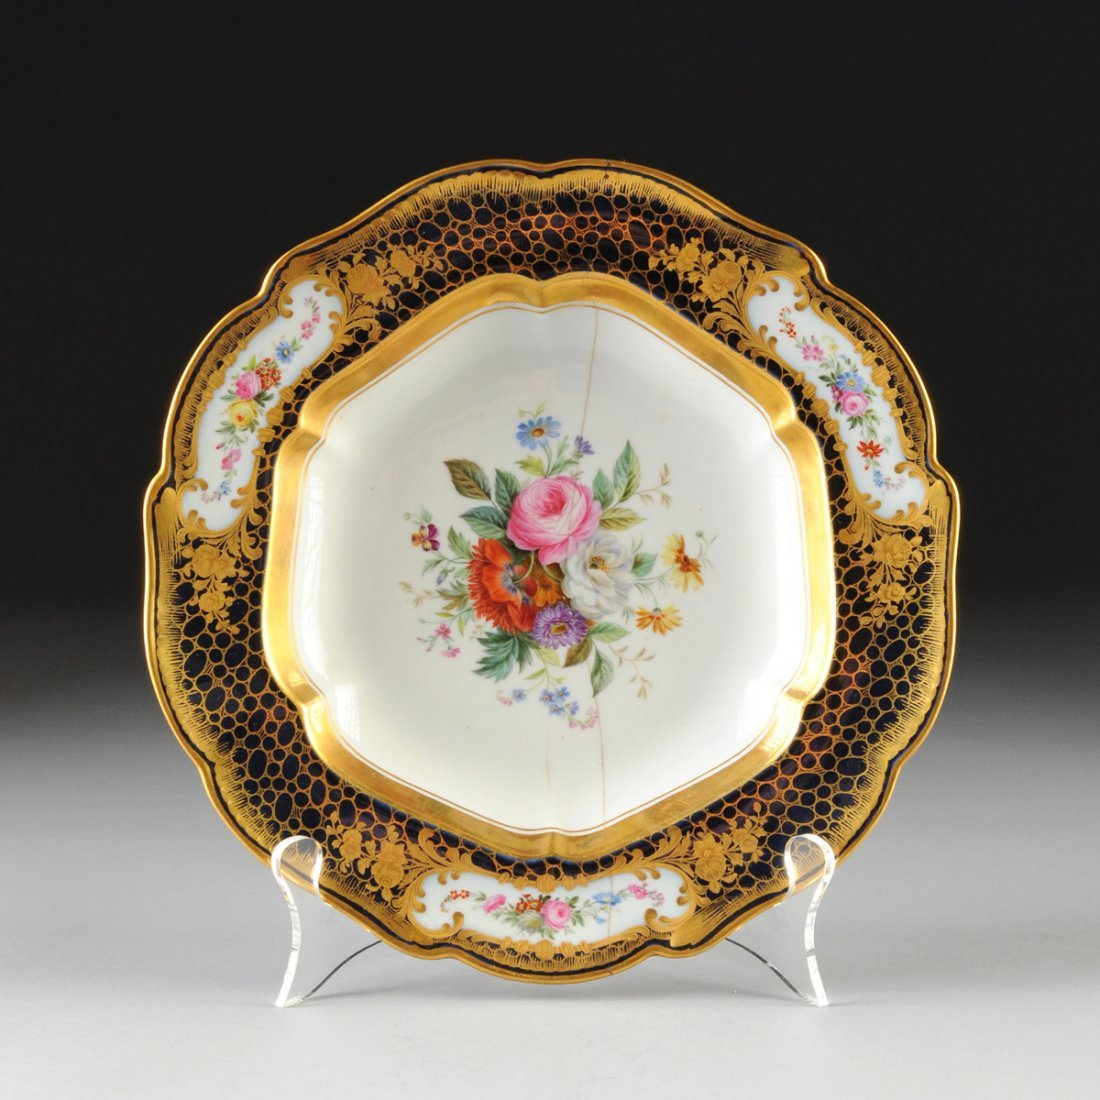 A RUSSIAN PARCEL GILT AND FLORAL PAINTED COBALT GROUND